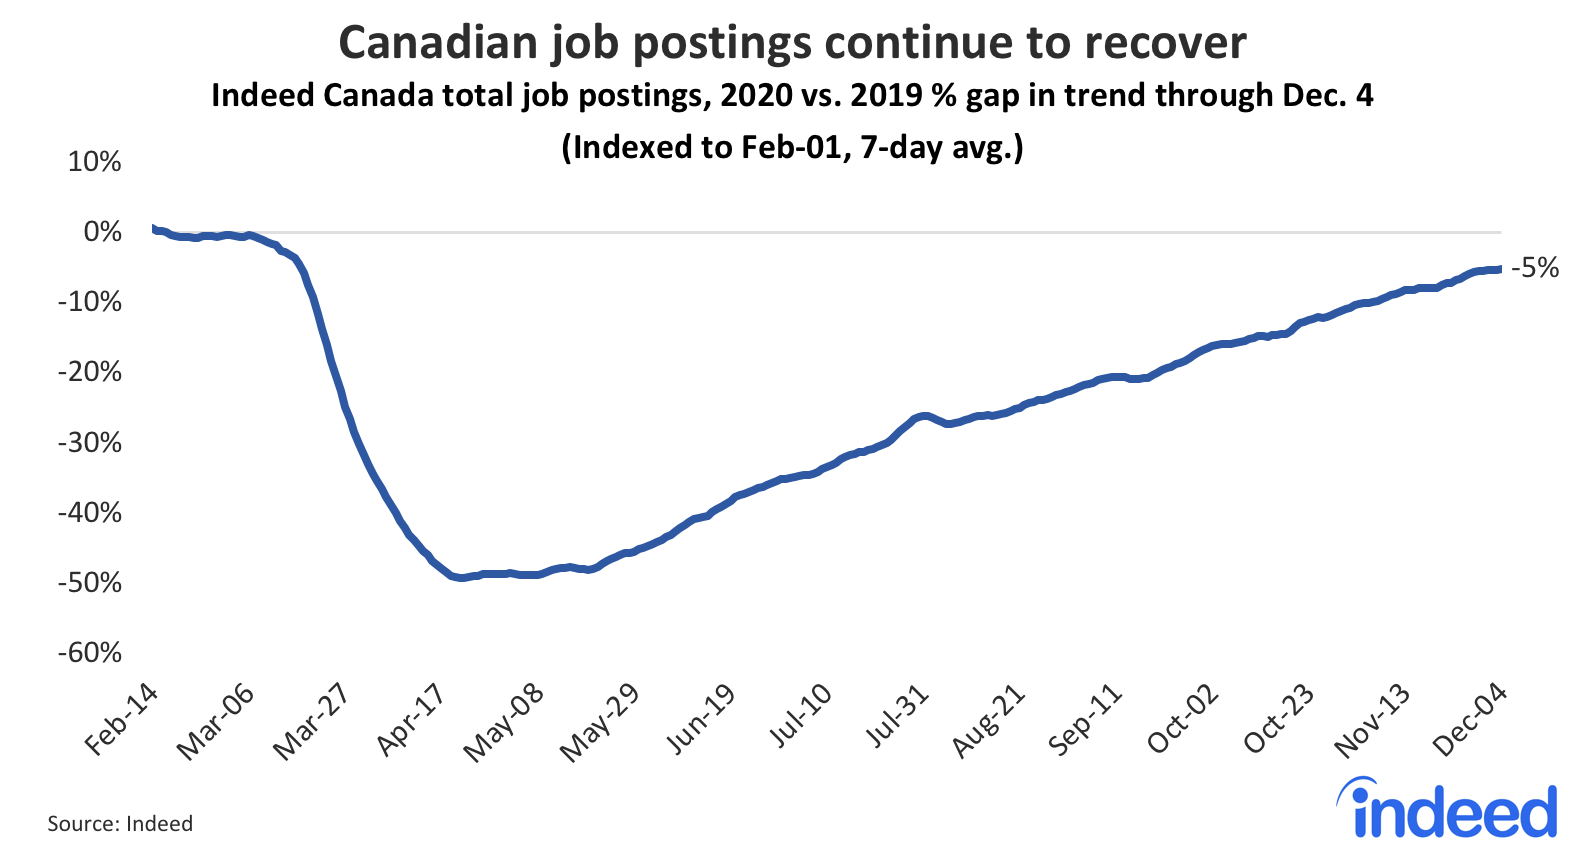 Line graph showing Canadian job postings continue to recover